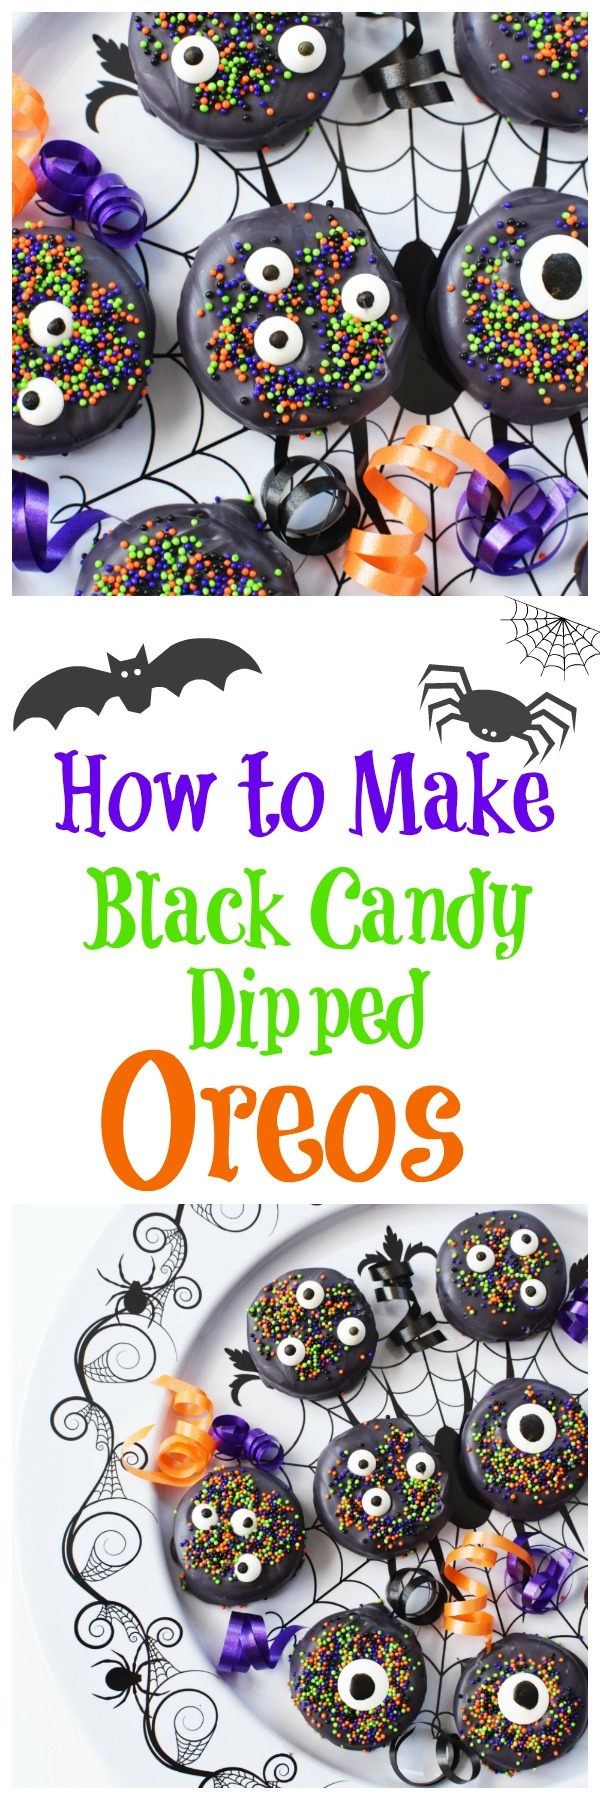 How to Make Black Candy Dipped Oreos